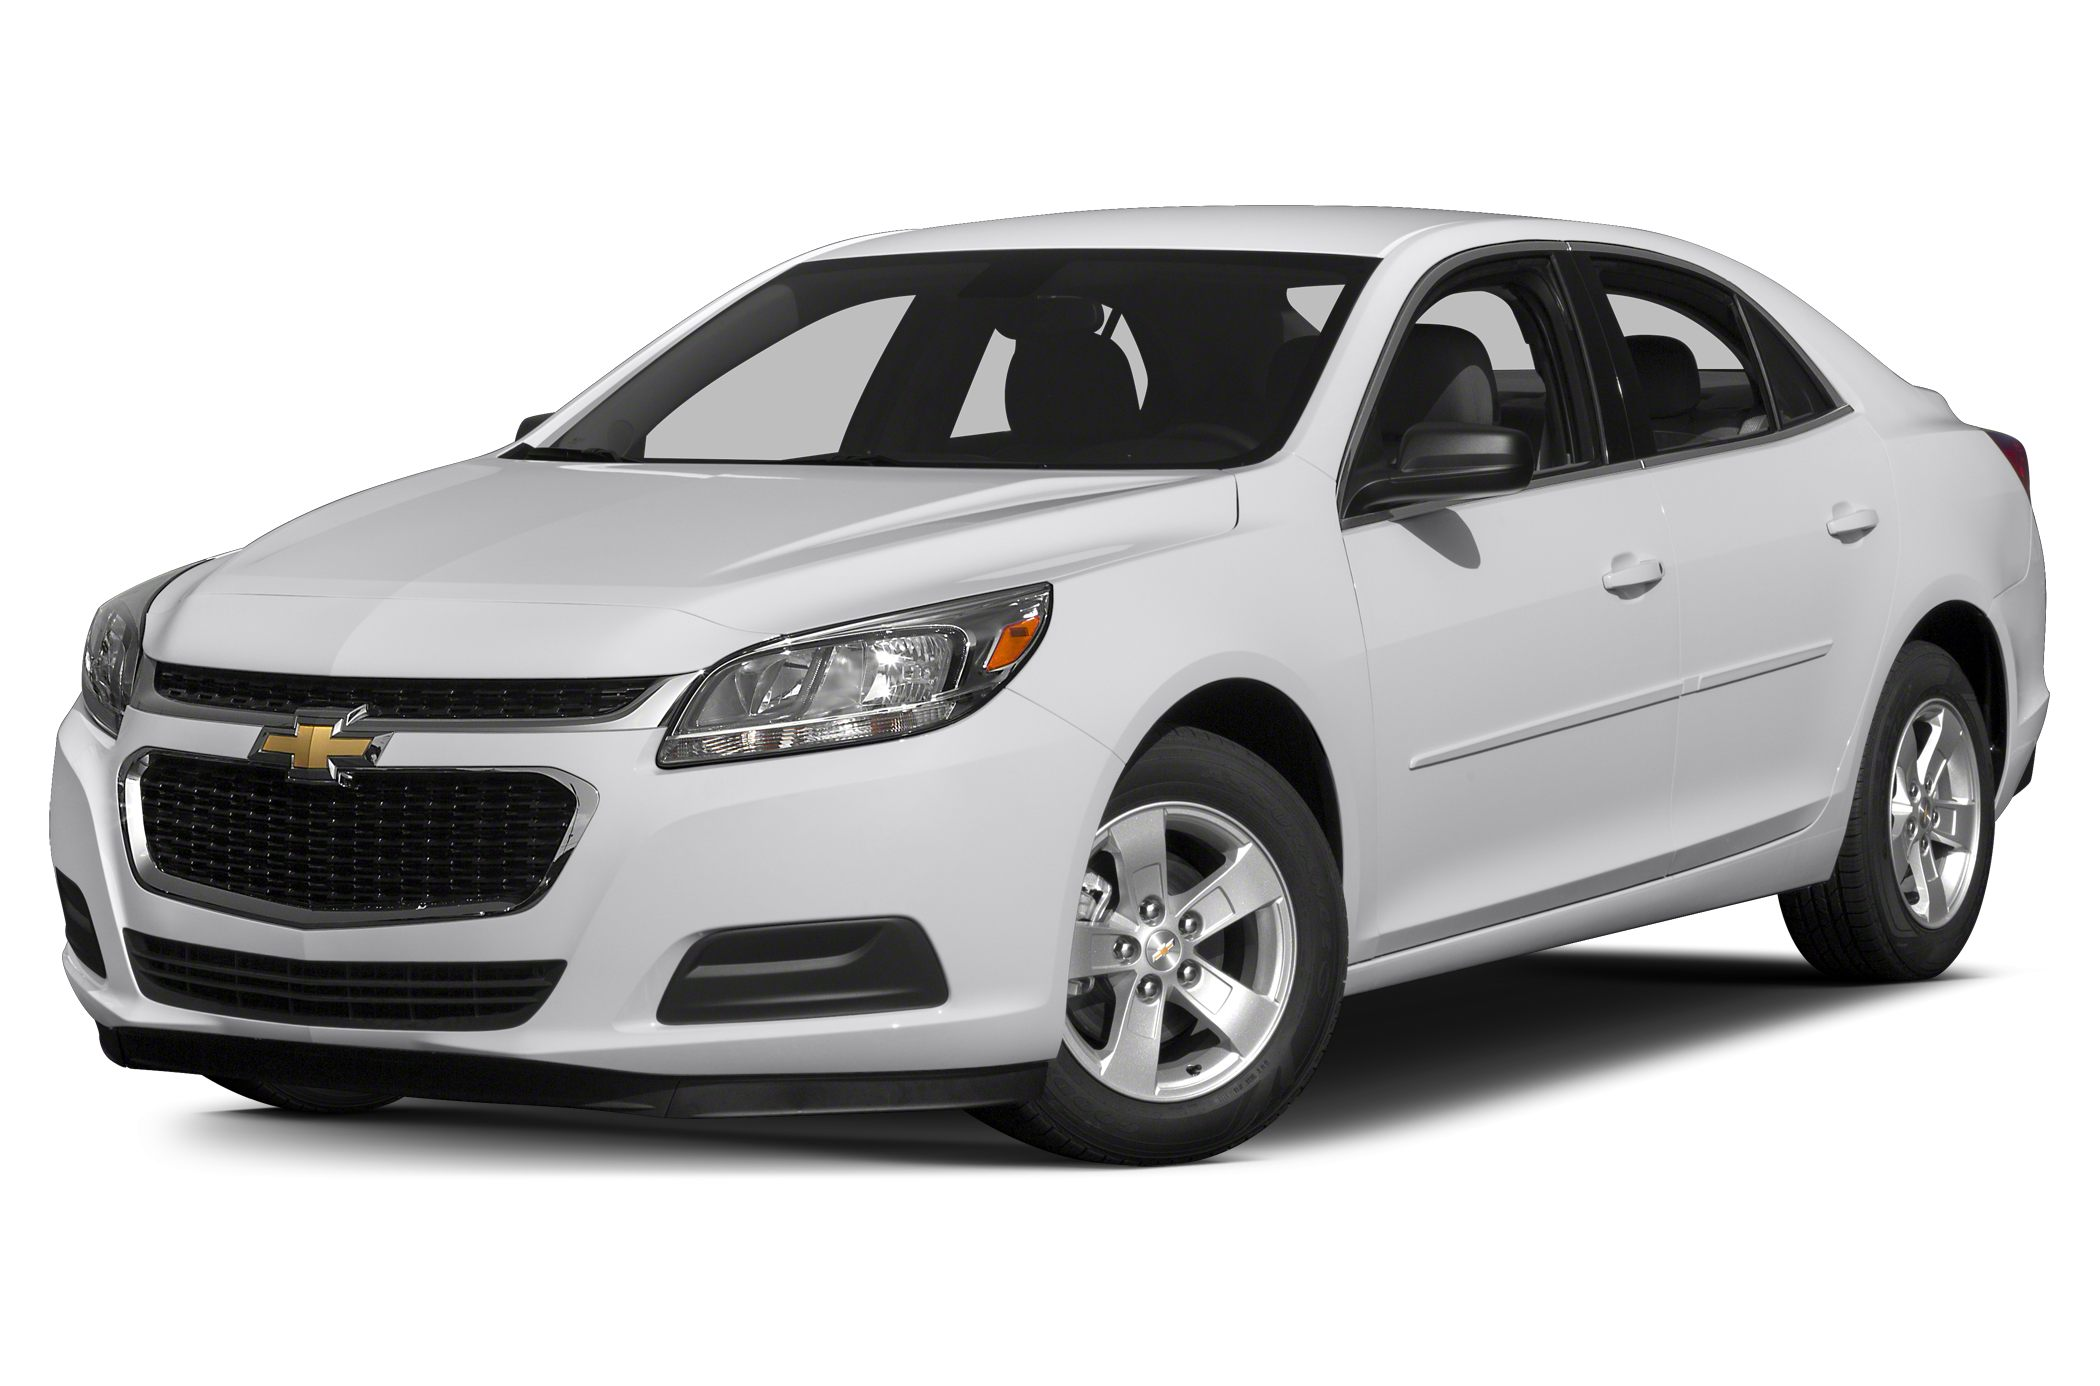 2015 Chevrolet Malibu LS Sedan for sale in Westfield for $23,565 with 0 miles